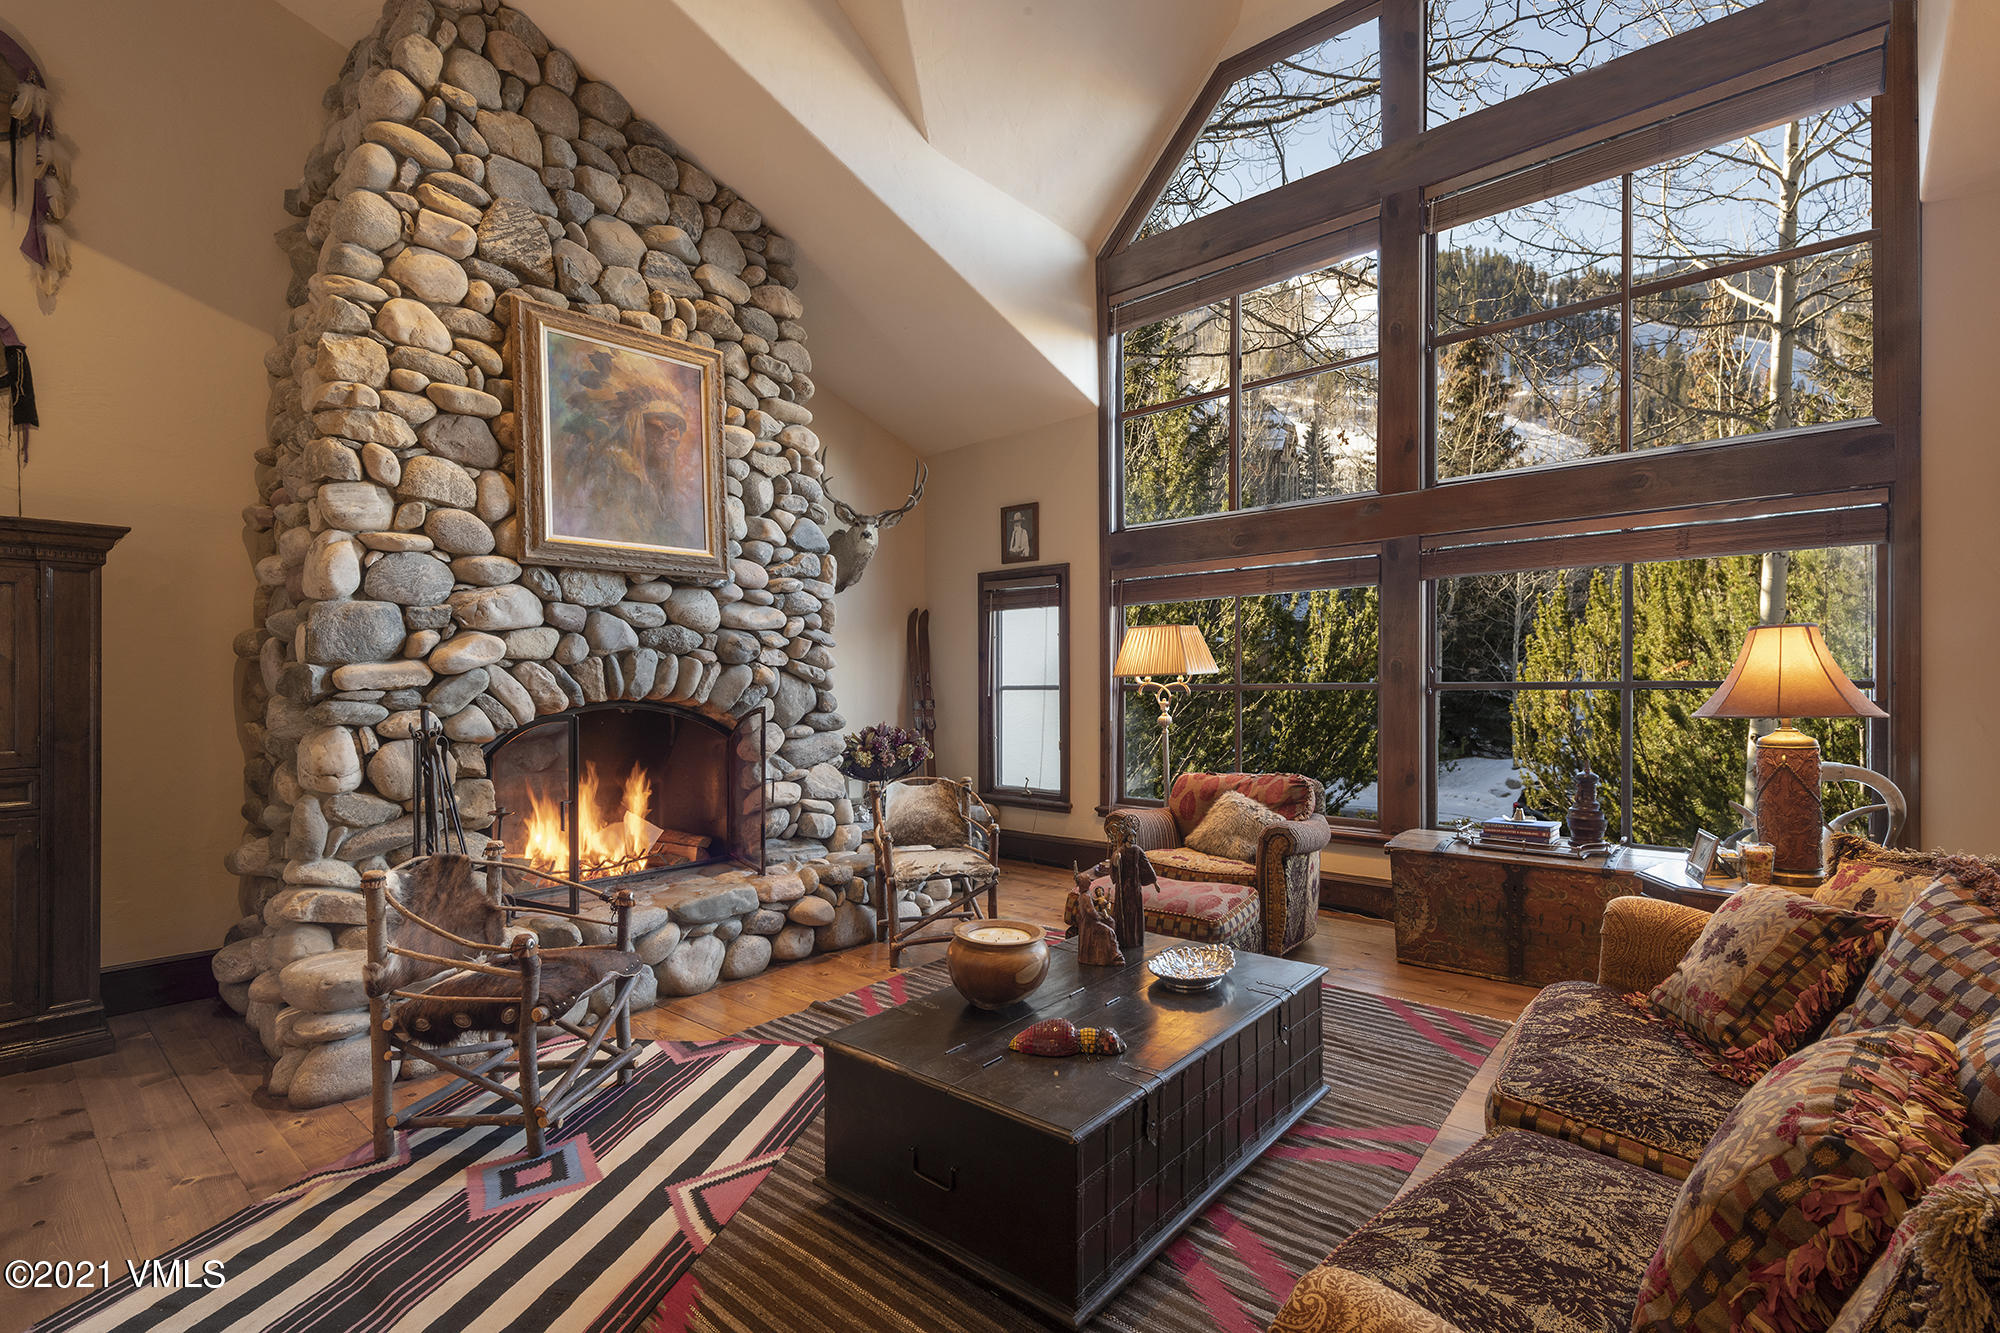 SaddleRidge Villa #12 is a premier offering with direct views to Beaver Creek Mountain. Owners enjoy the spacious floorplan, over 3600 square feet, offering two living areas, large bedroom suites and ski slope views.SaddleRidge is amenity rich, ski-in community within the gates of Beaver Creek that offers an indoor/outdoor pool, restaurant, fitness, hot tub, and library. Offered beautifully furnished with original antiques and artifacts. mls.SaddleRidge12.com